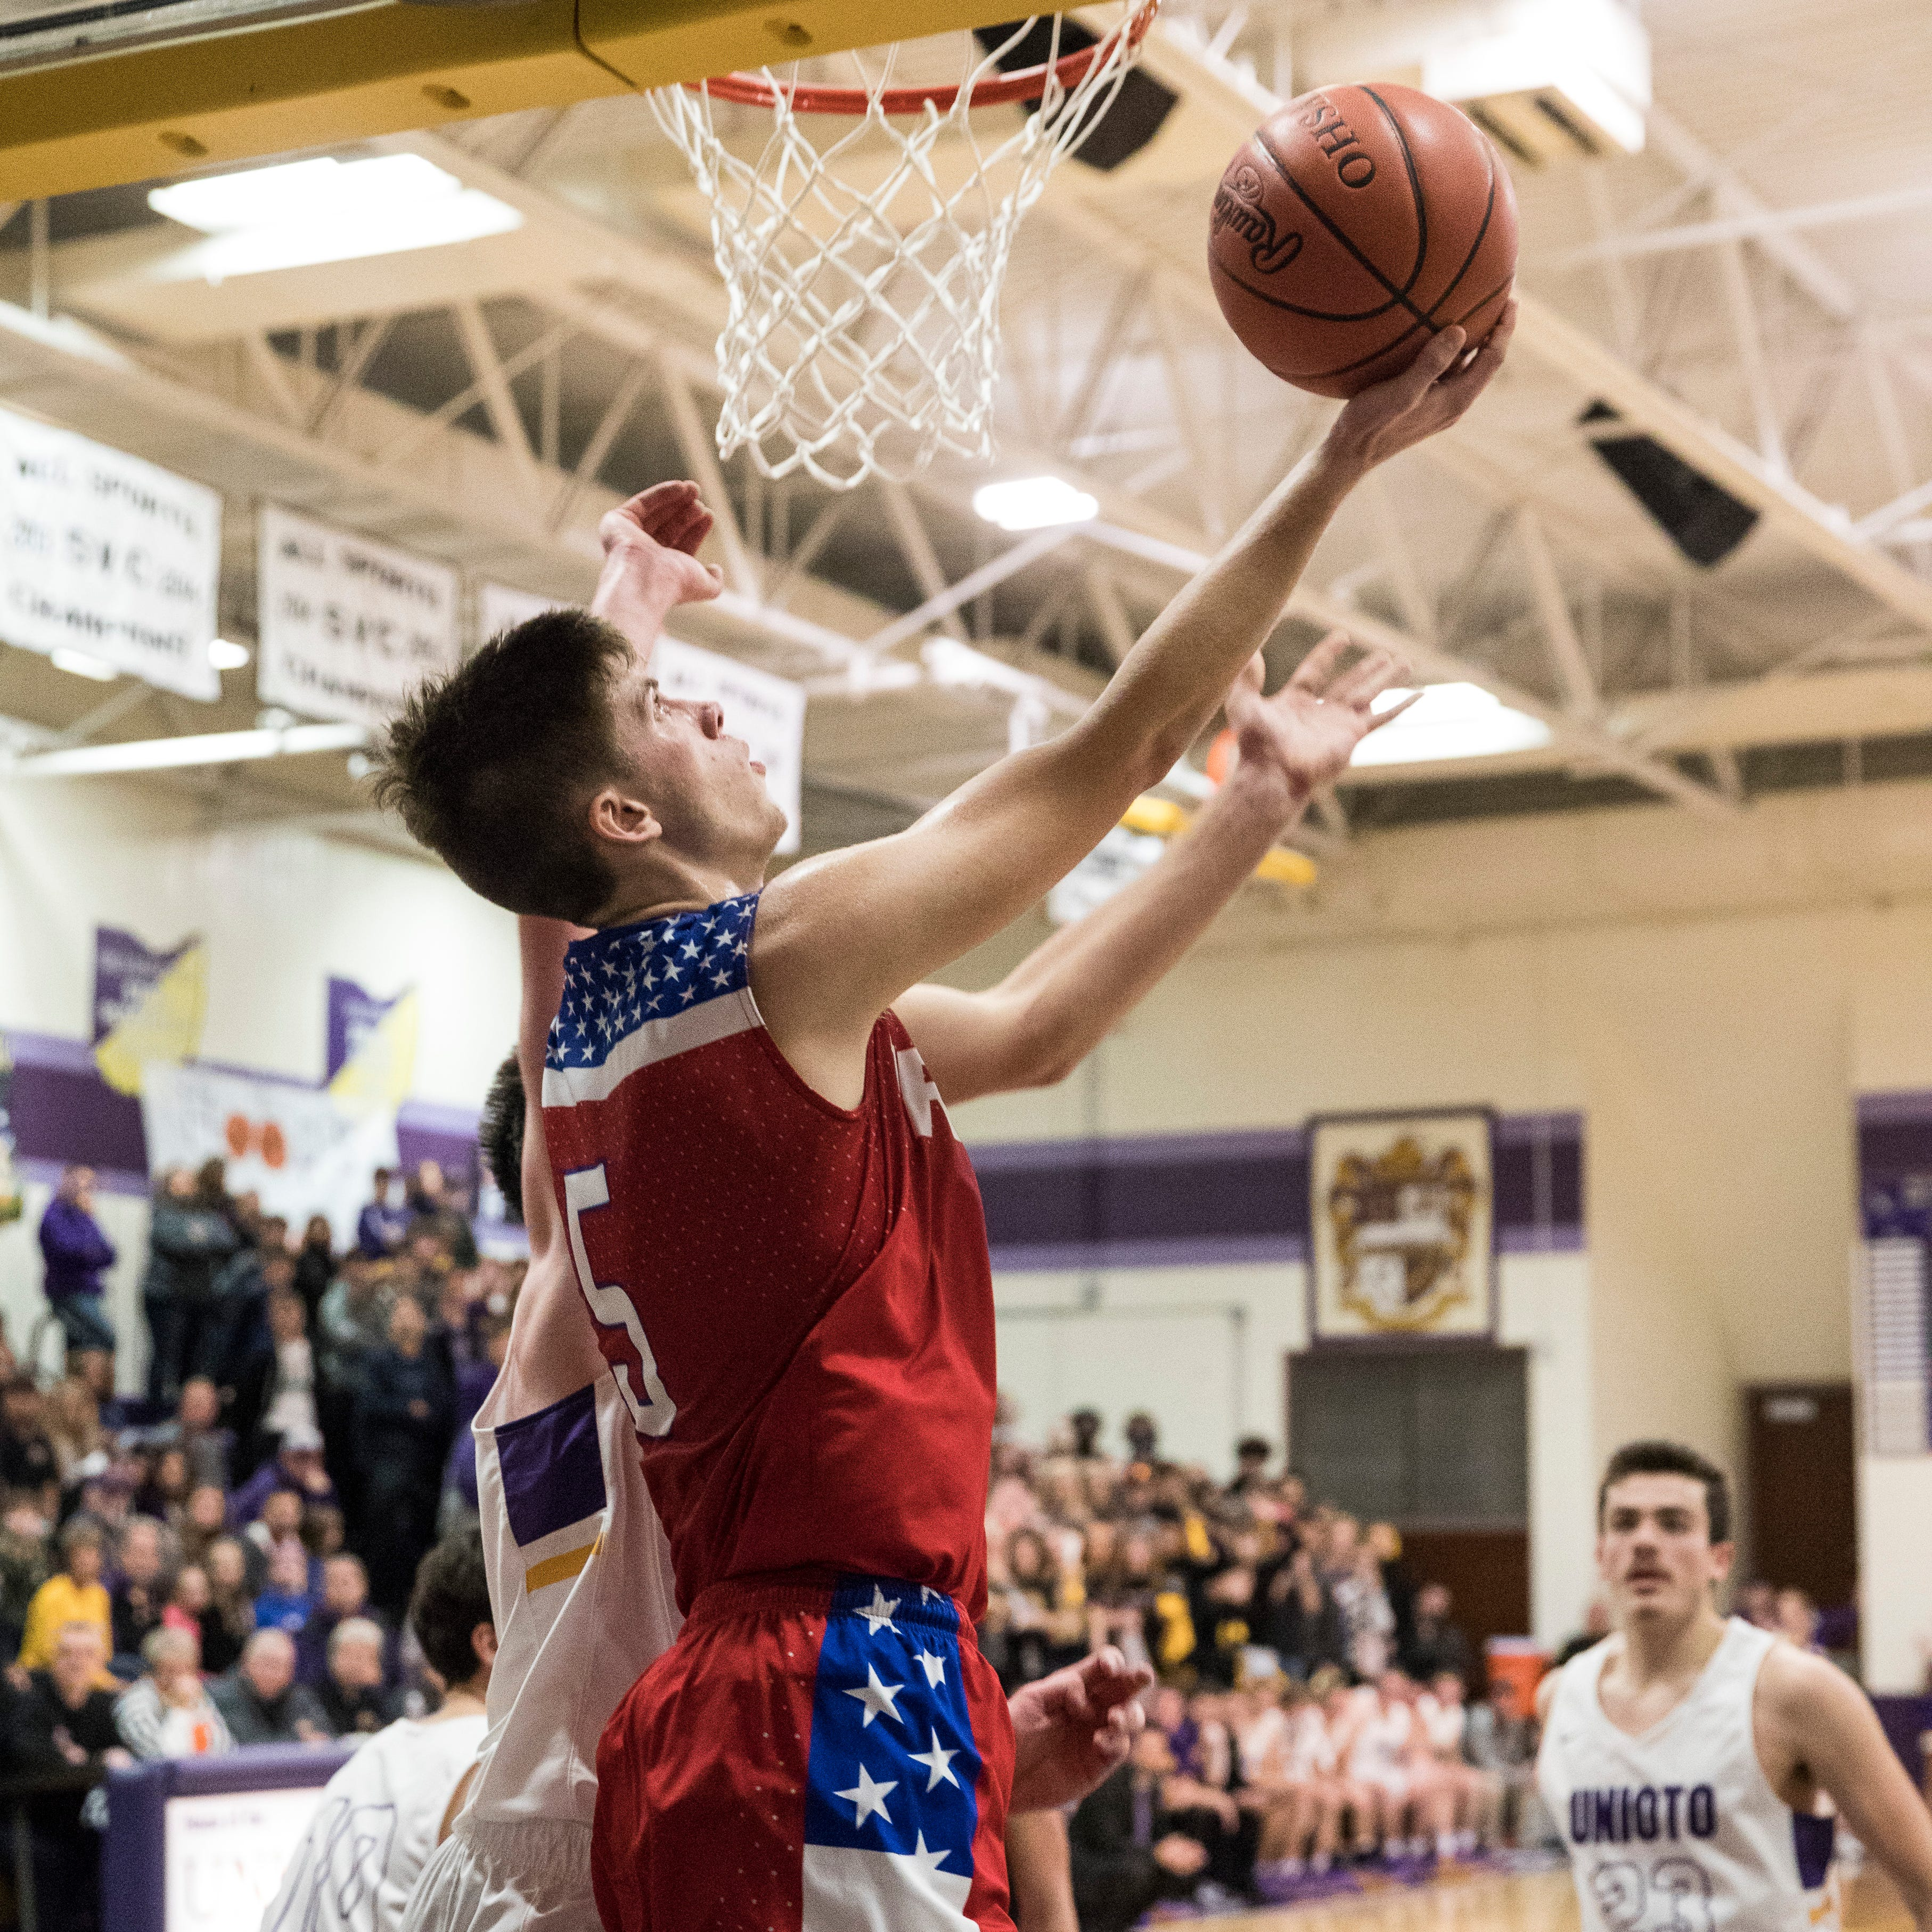 Four takeaways from Zane Trace snapping Unioto's 69-game win streak in a 69-50 win